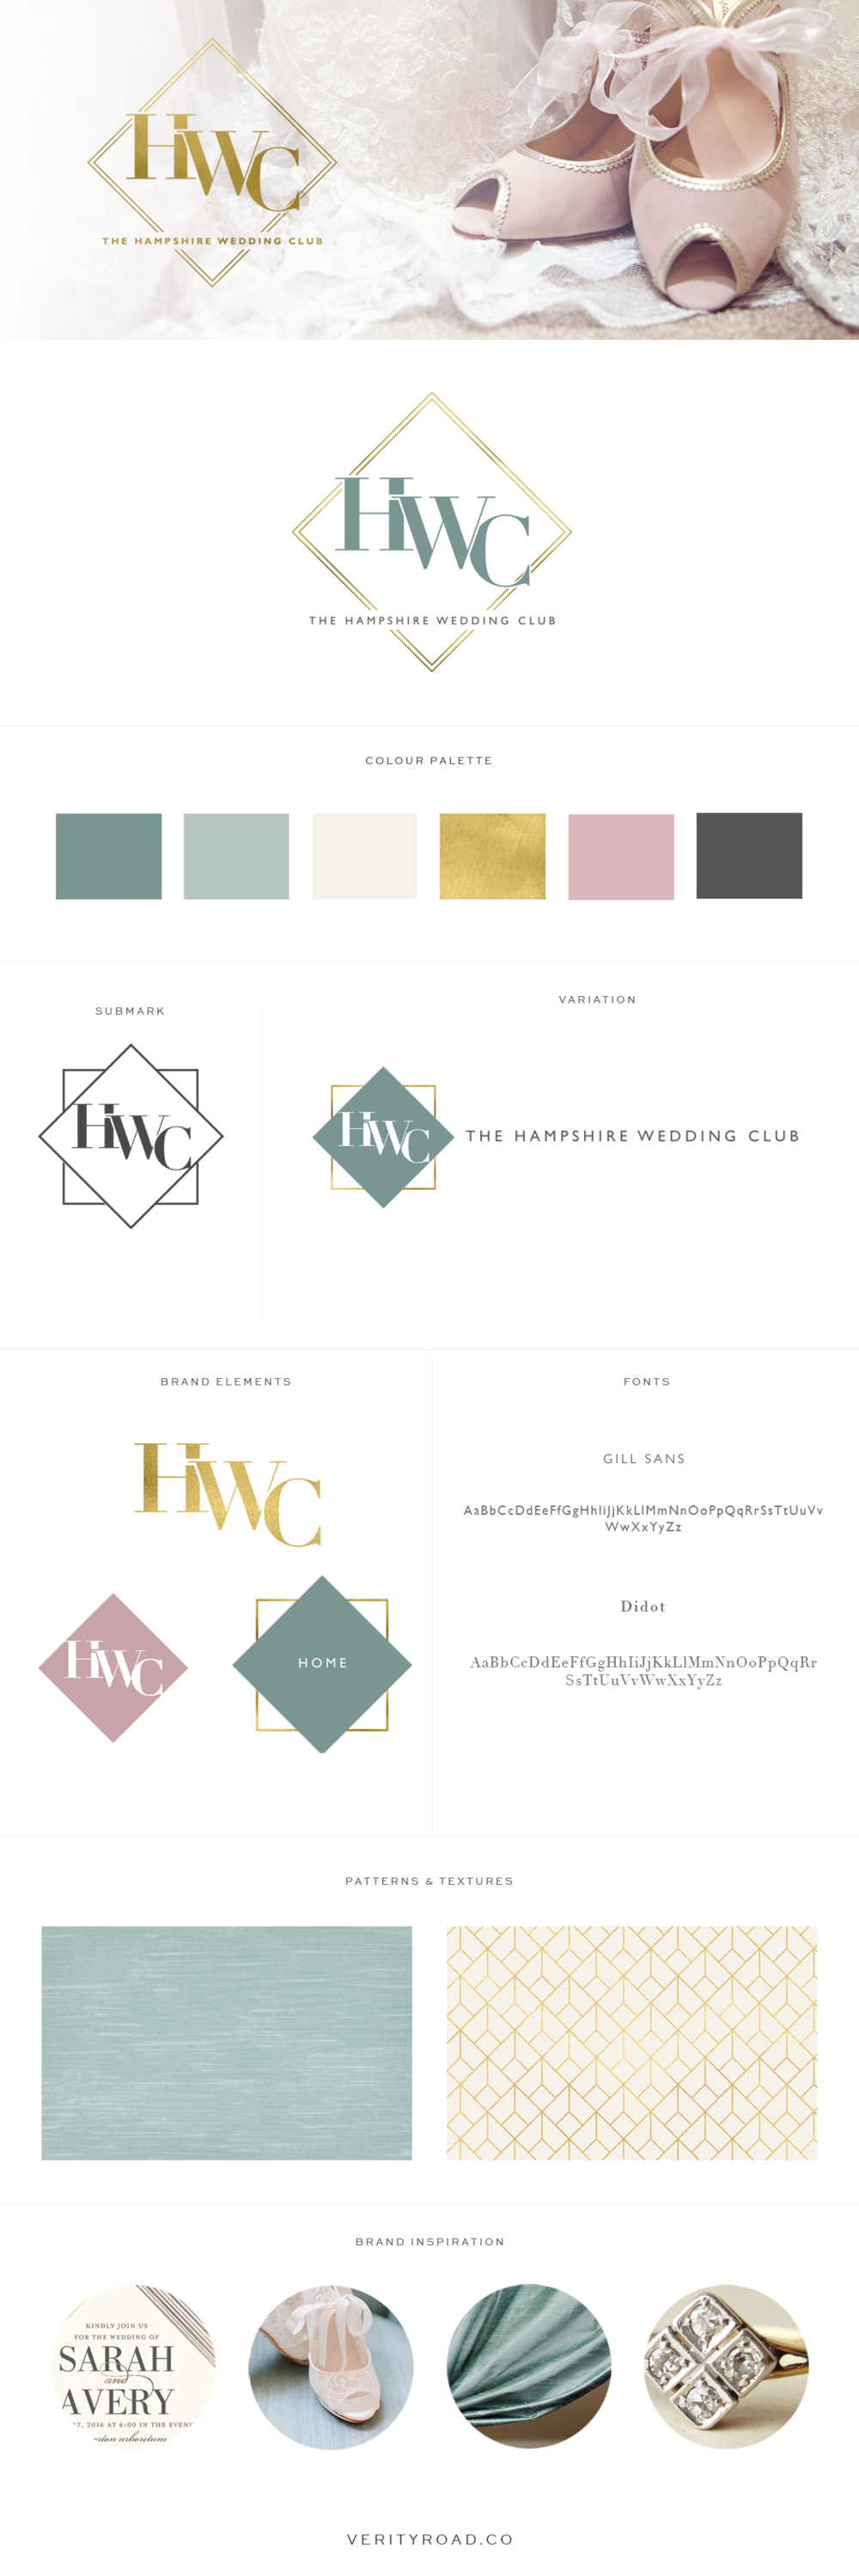 Brand board for wedding professionals, wedding suppliers photographers, wedding business branding, wedding planners, florists, luxury branding, feminine branding and web design for female entrepreneurs, business branding, logo design, brand elements typography, DUSTY ROSE, TEAL, gold, color palette, luxury wedding, business owner, watercolor, brand style guide.